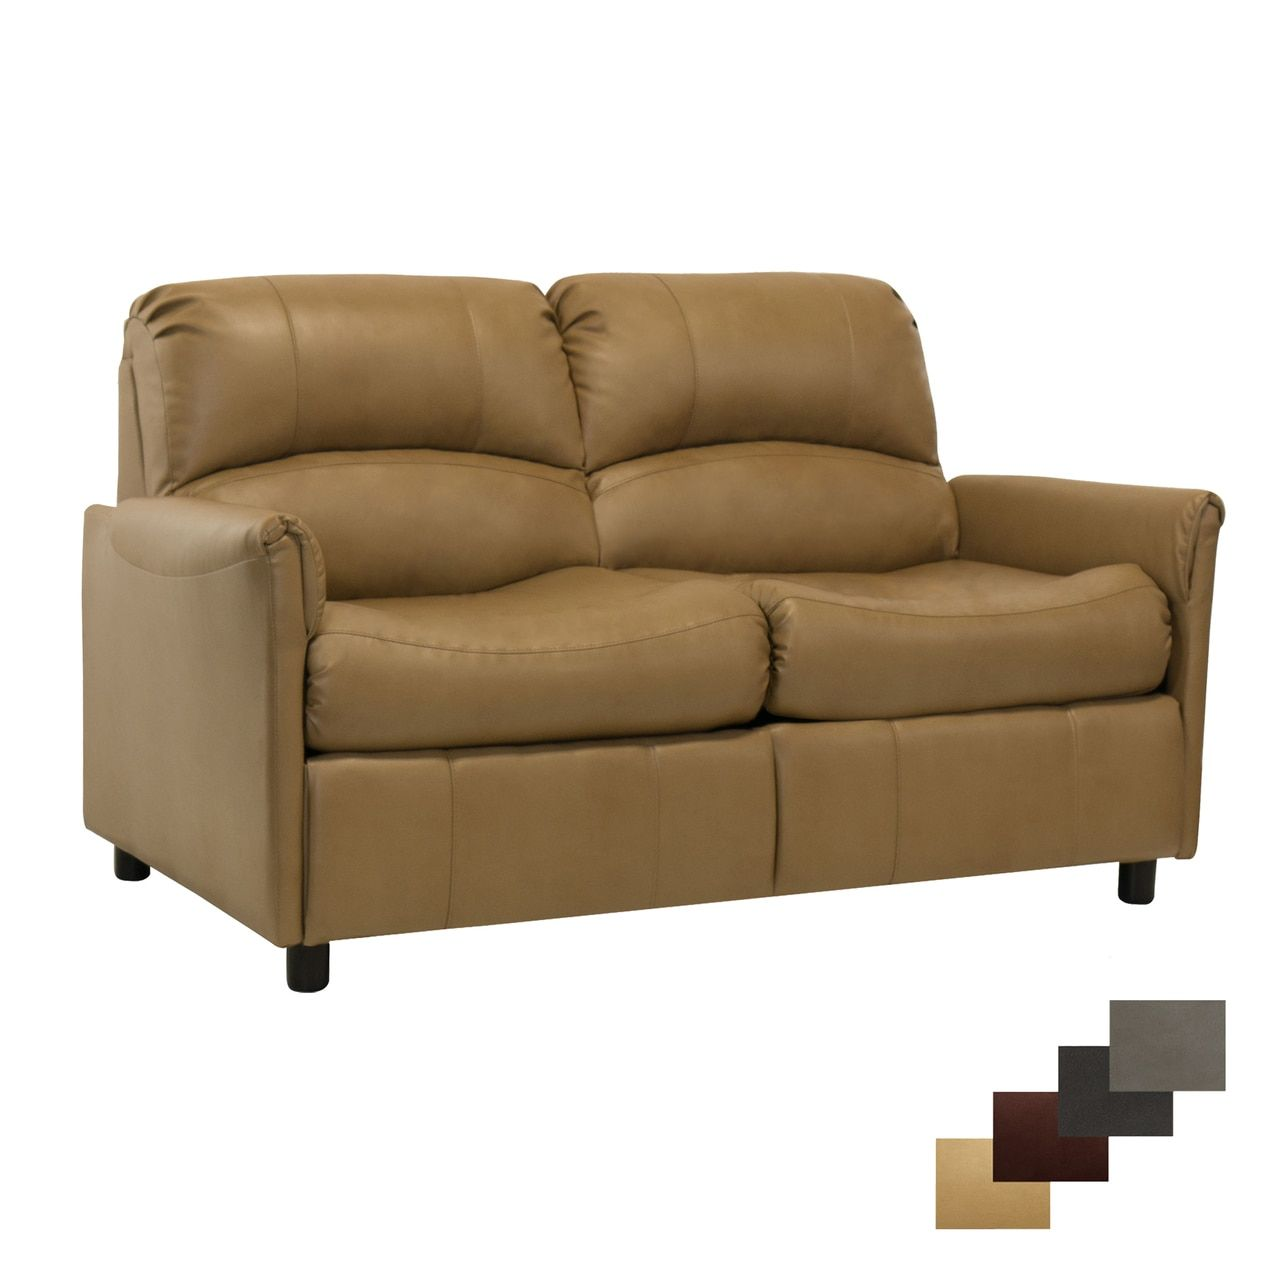 Rv Hide A Bed Love Seat Rv Sofa Bed Hidden Bed Hide a beds for sale